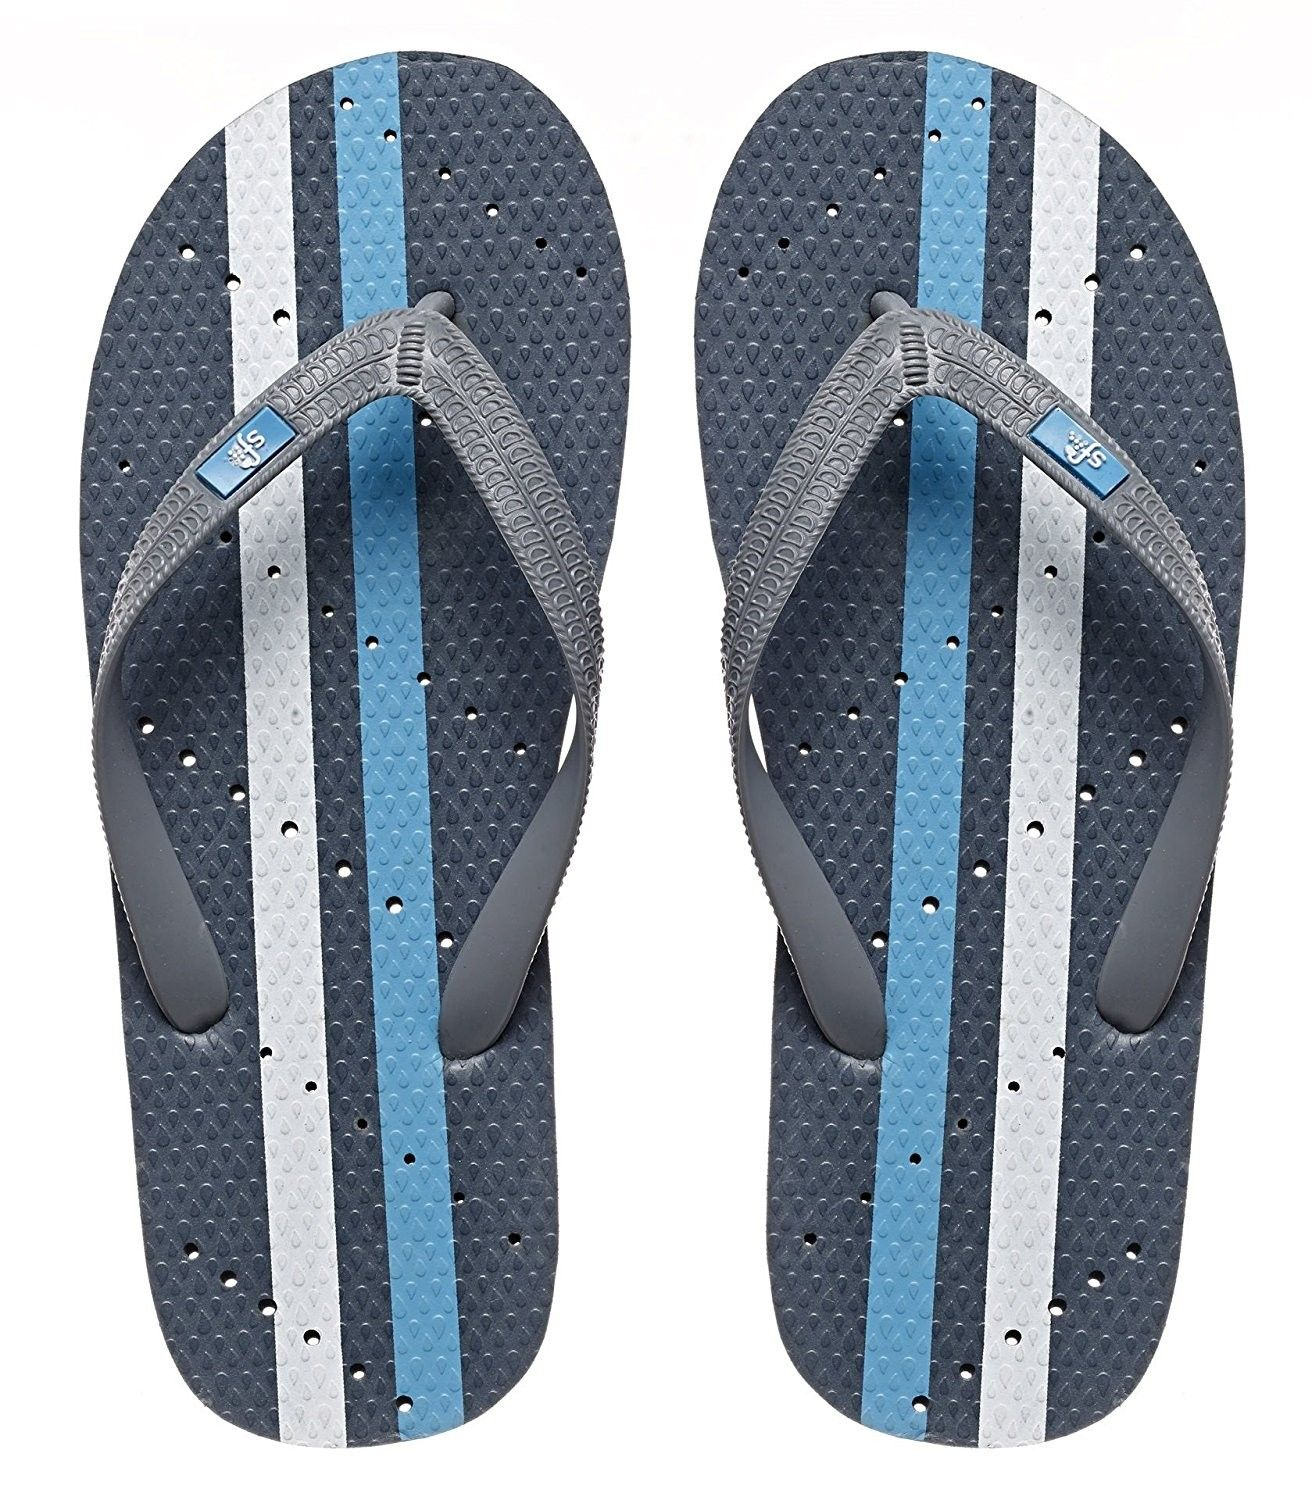 94d11d2c1a02 Antimicrobial Shower Water Sandals - Grey Turquoise - CB1807KODEY ...